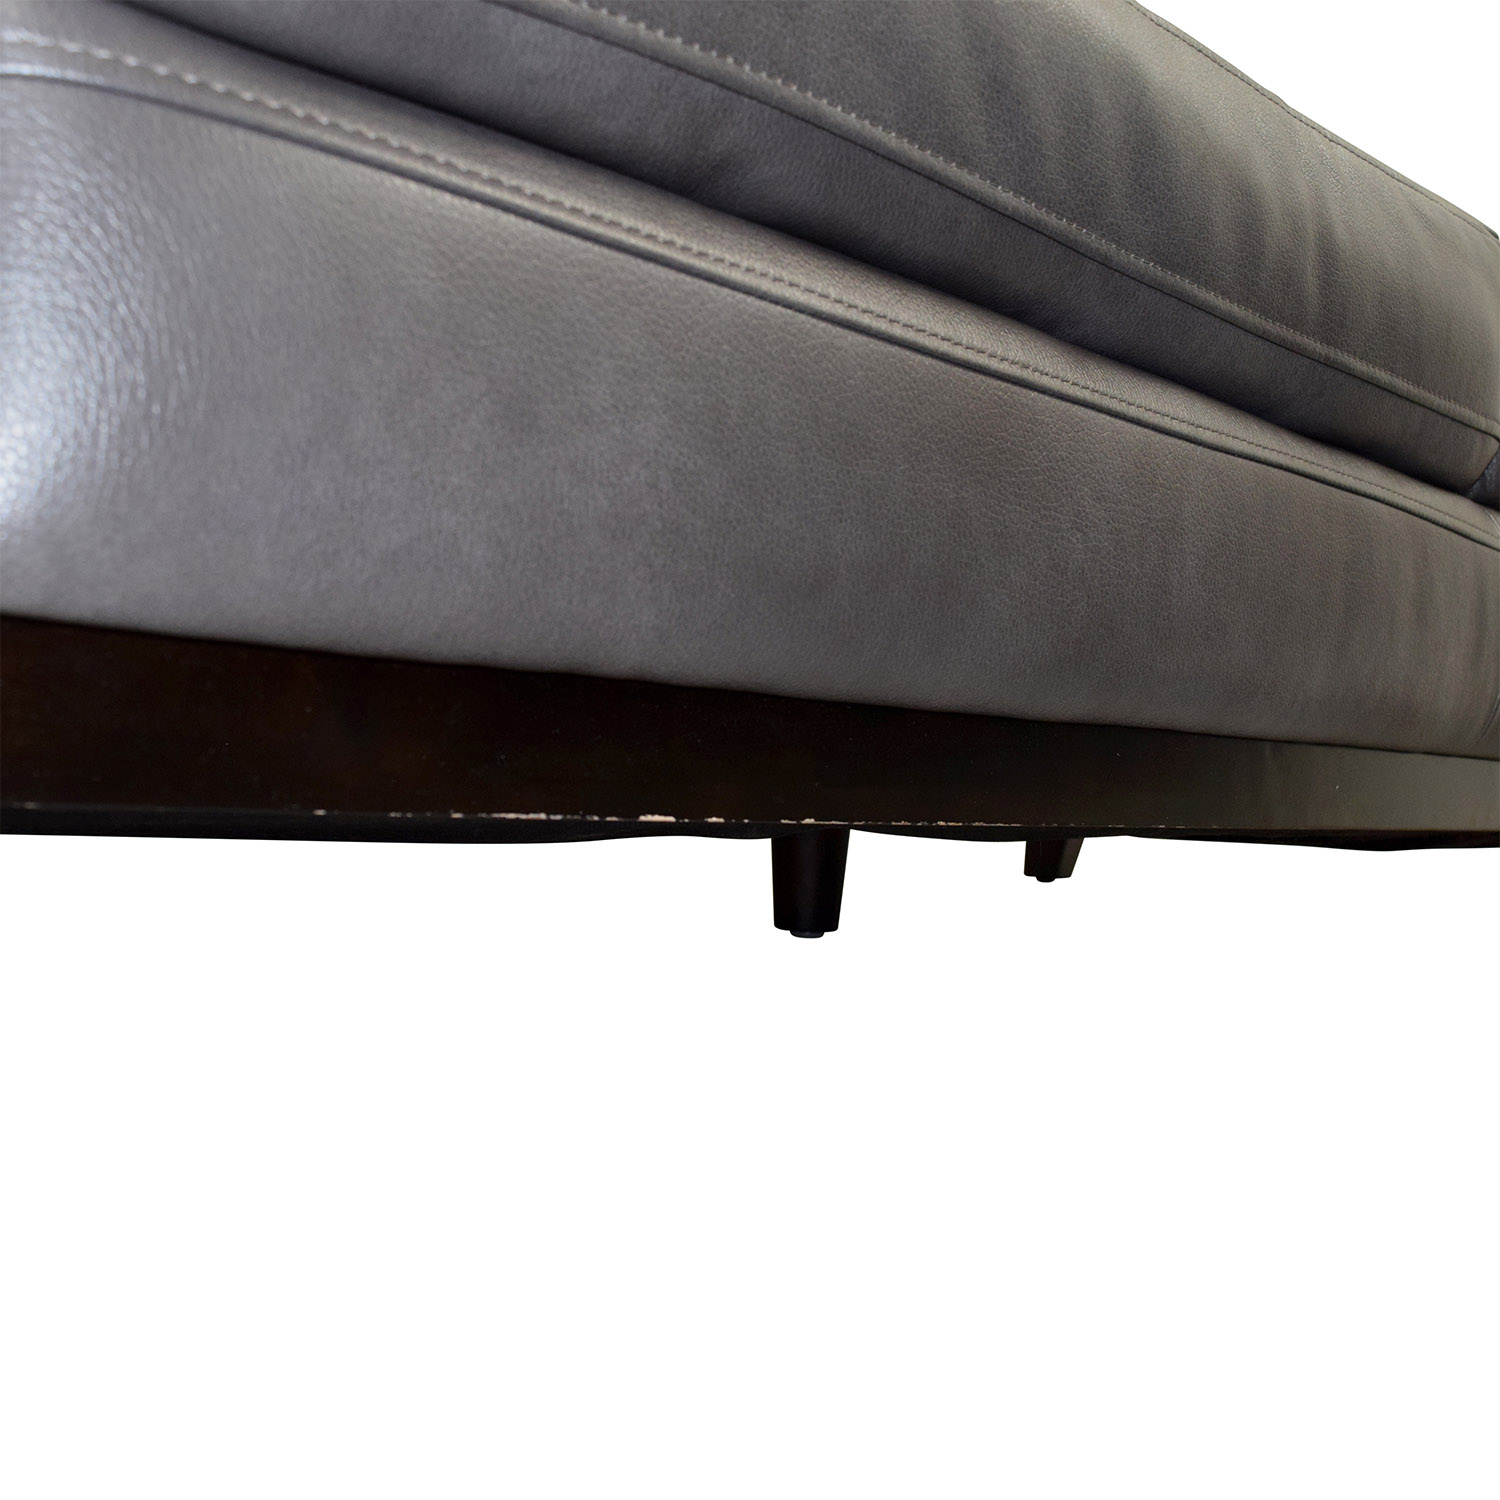 shop Raymour & Flanigan Raymour & Flanigan Grey Leather Couch with Storage Ottoman online